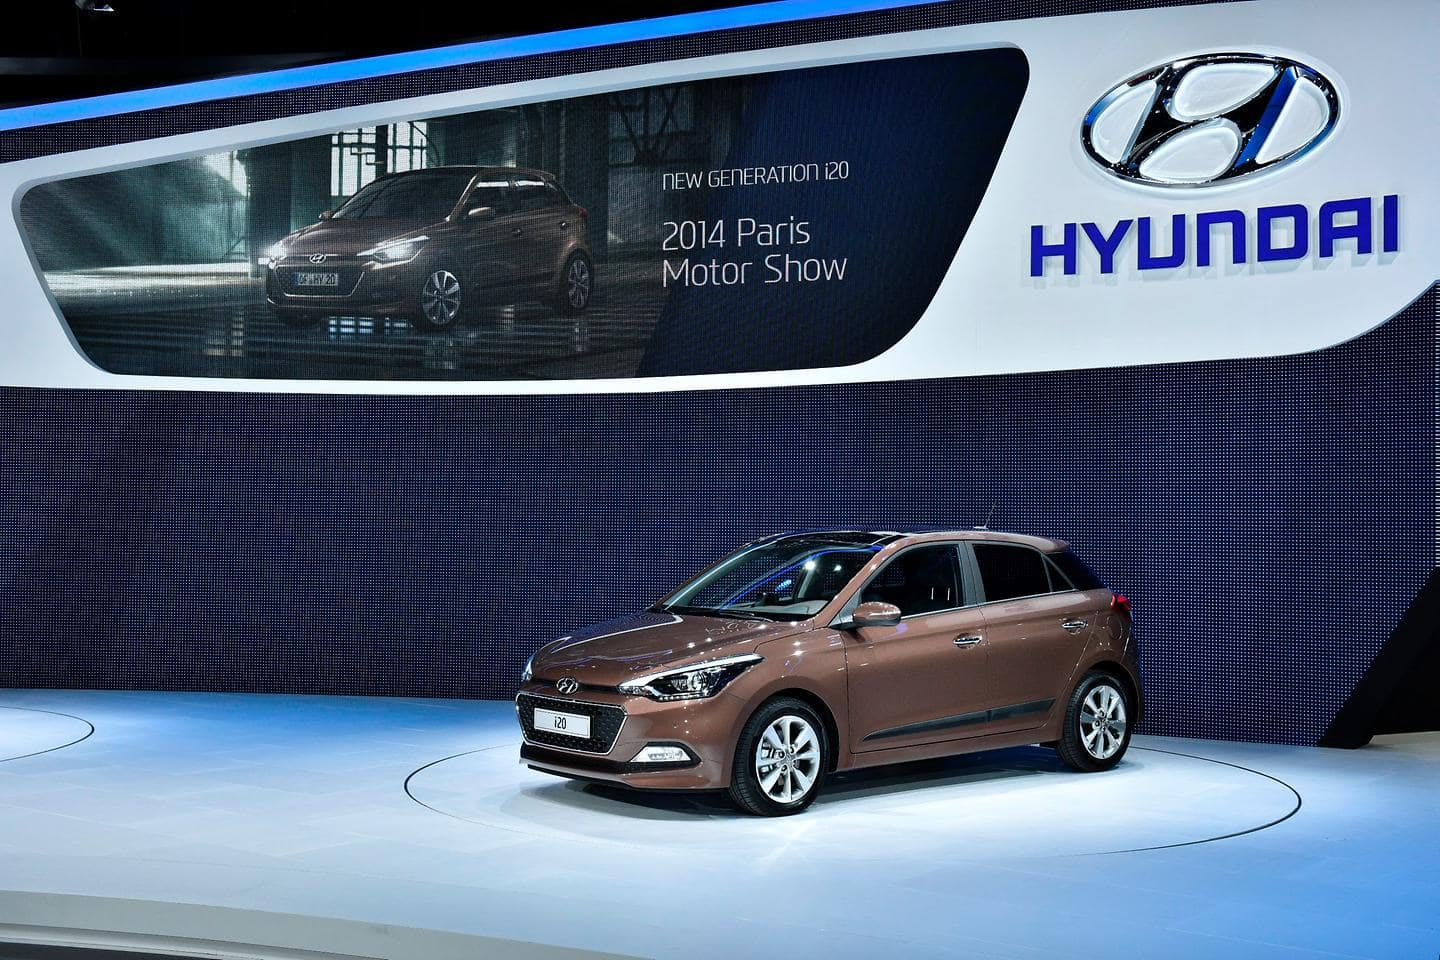 Hyundai Motor showcases fuel efficiency technologies at Paris Motor Show 2014